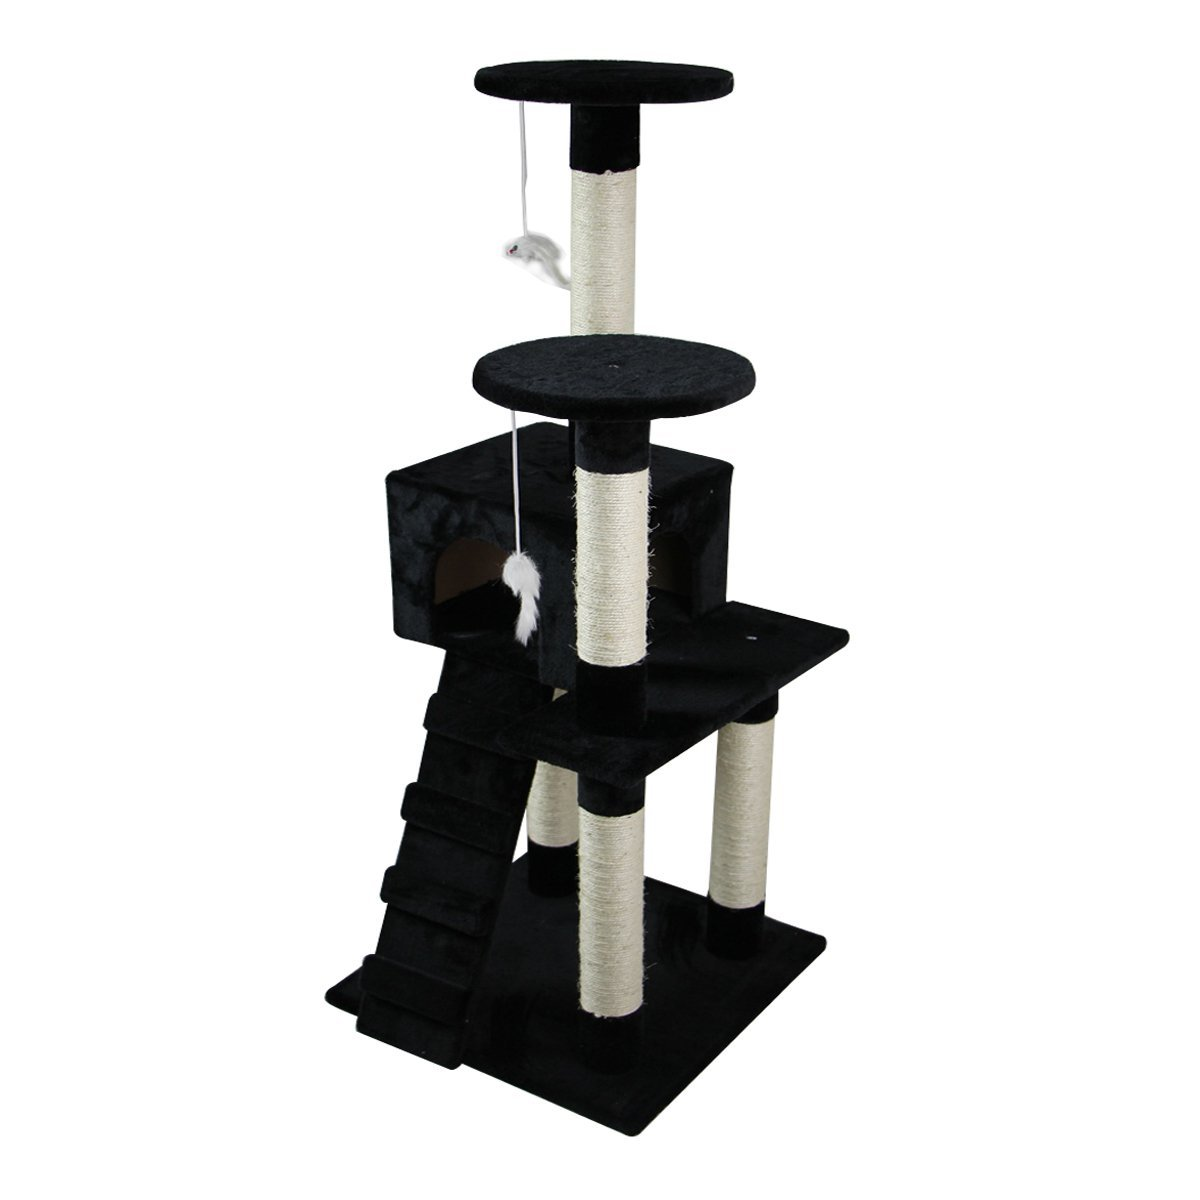 52-039-039-Cat-Tree-Multi-Level-Tower-Kitten-Condo-House-Activity-Center-Pet-Furniture thumbnail 9